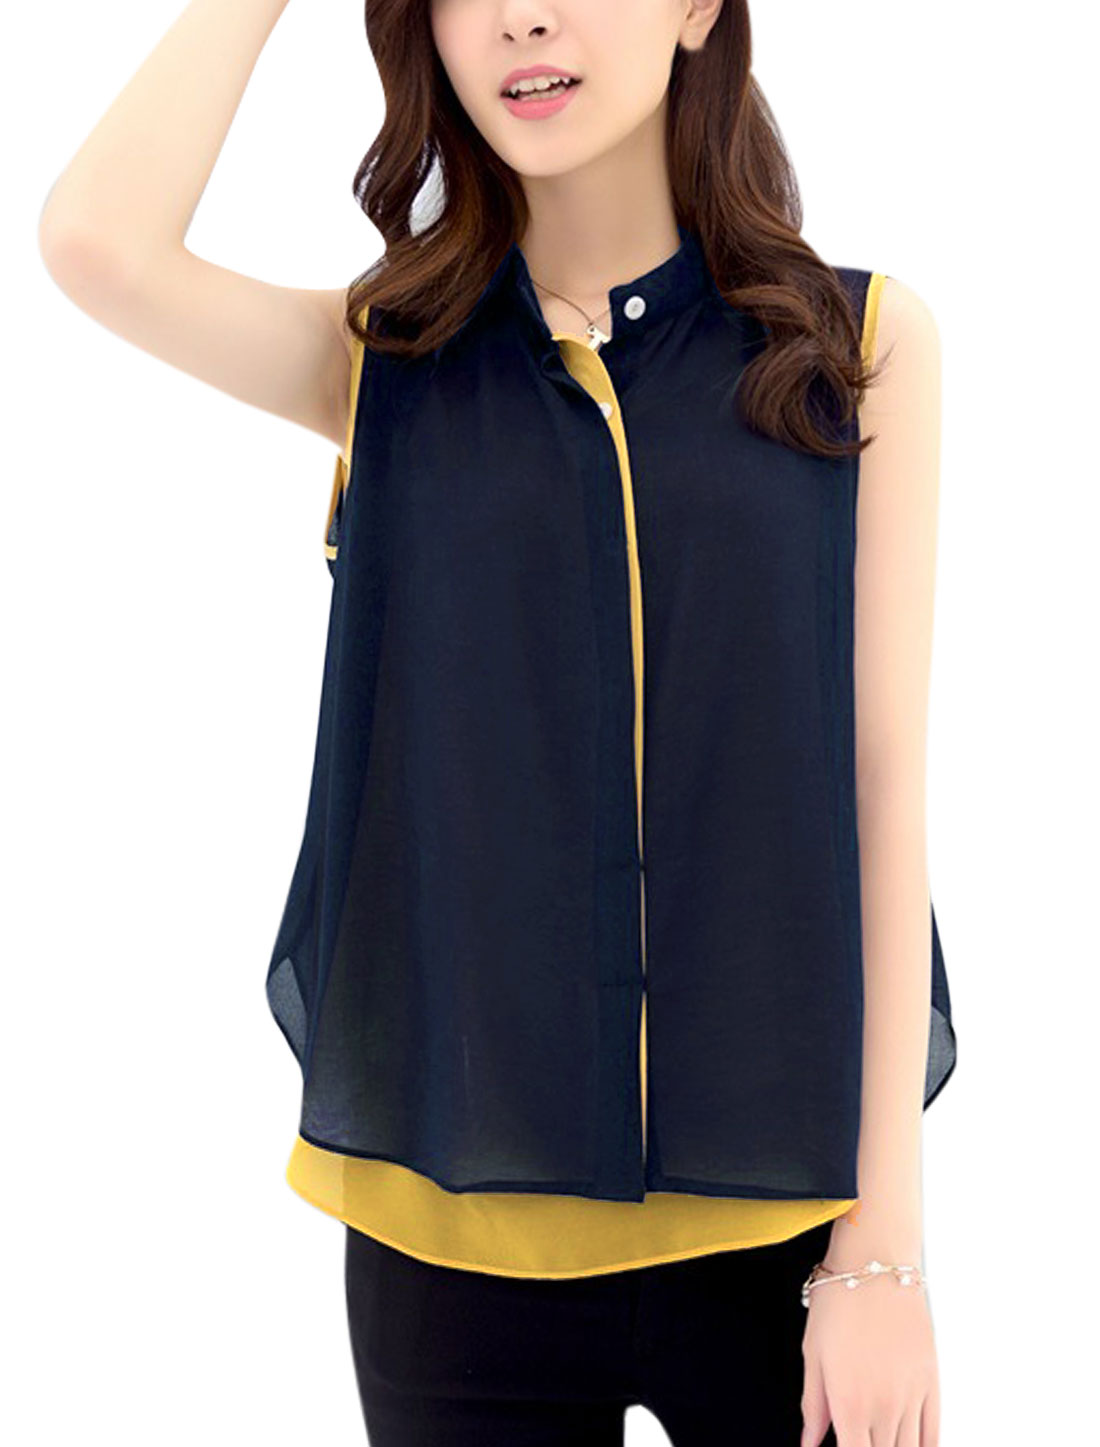 Lady See Through Tank Top w Sleeveless Chiffon Shirt Navy Blue Light Yellow S